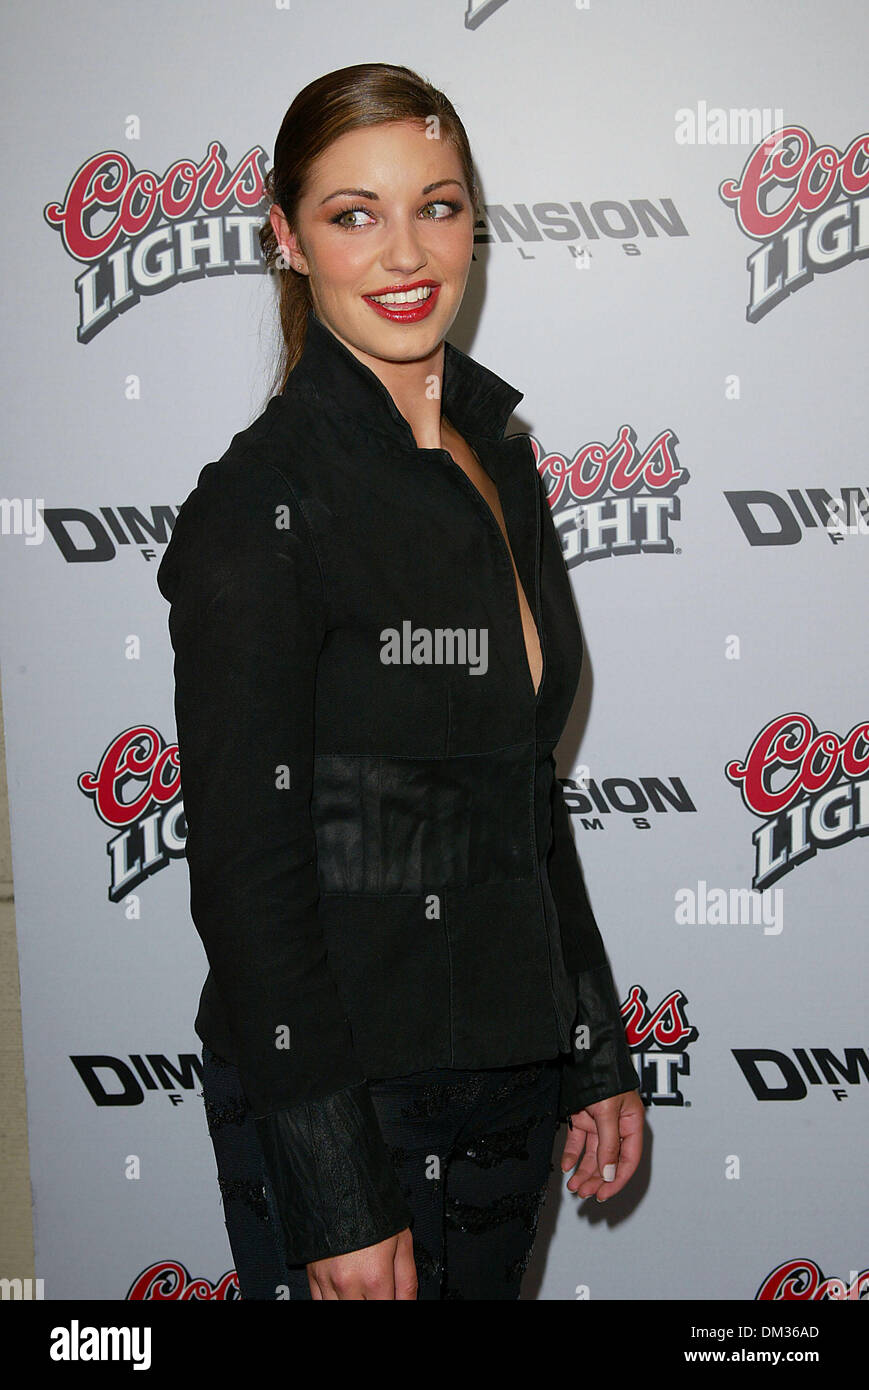 july 1 2002 los angeles california halloween resurrection premiereat the mann festival in los angeles cabianca kajlich - Bianca Kajlich Halloween